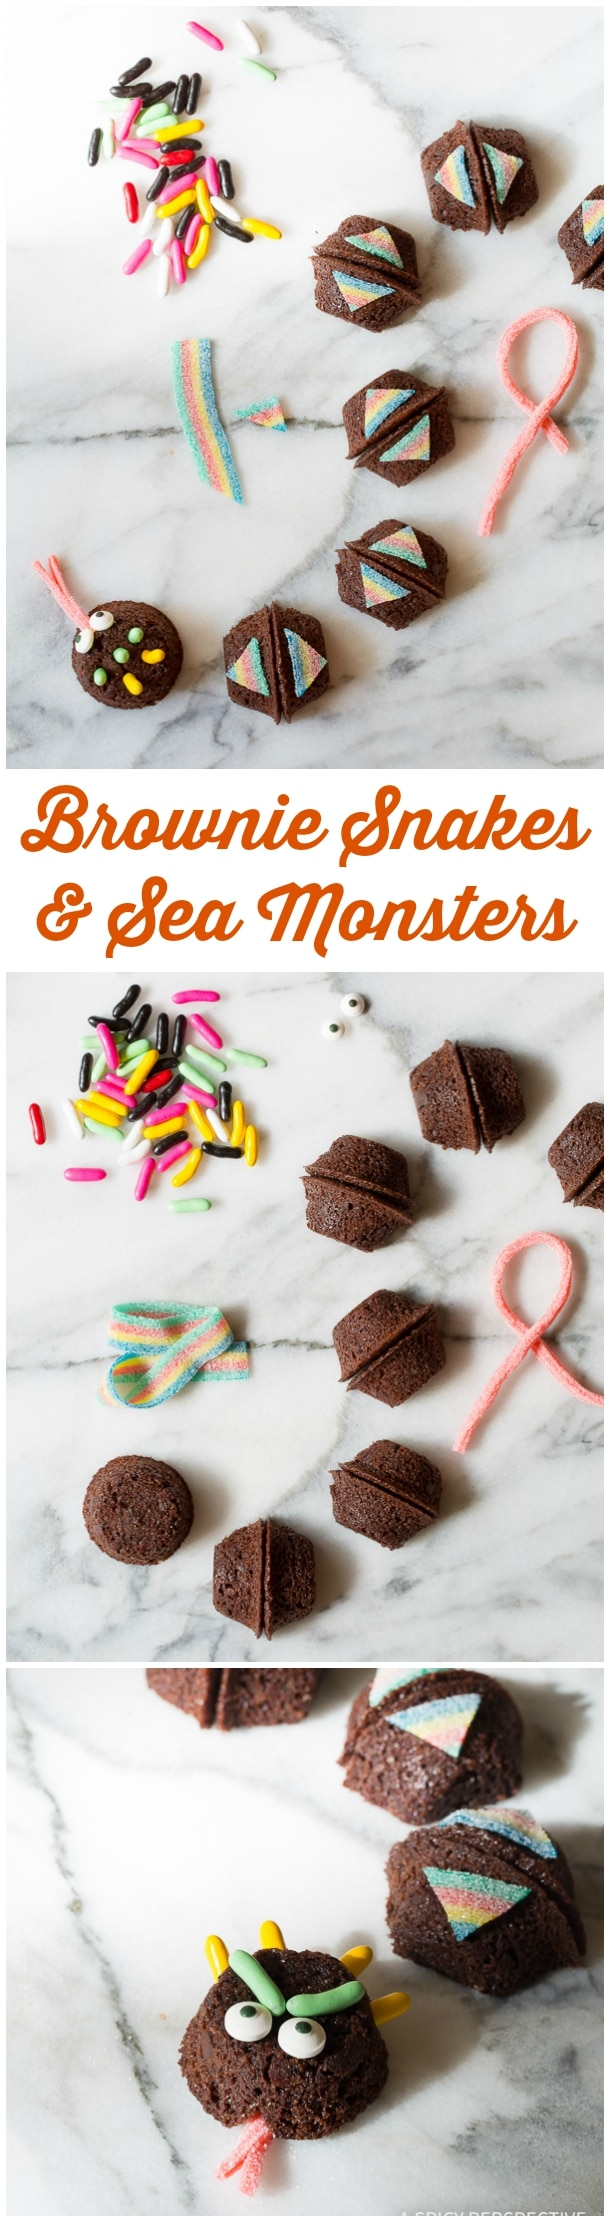 Learn How to Make Snakes and Sea Monsters - 5 Easy Halloween Treats Made with Brownie Bites on ASpicyPerspective.com - Fun for Kids!